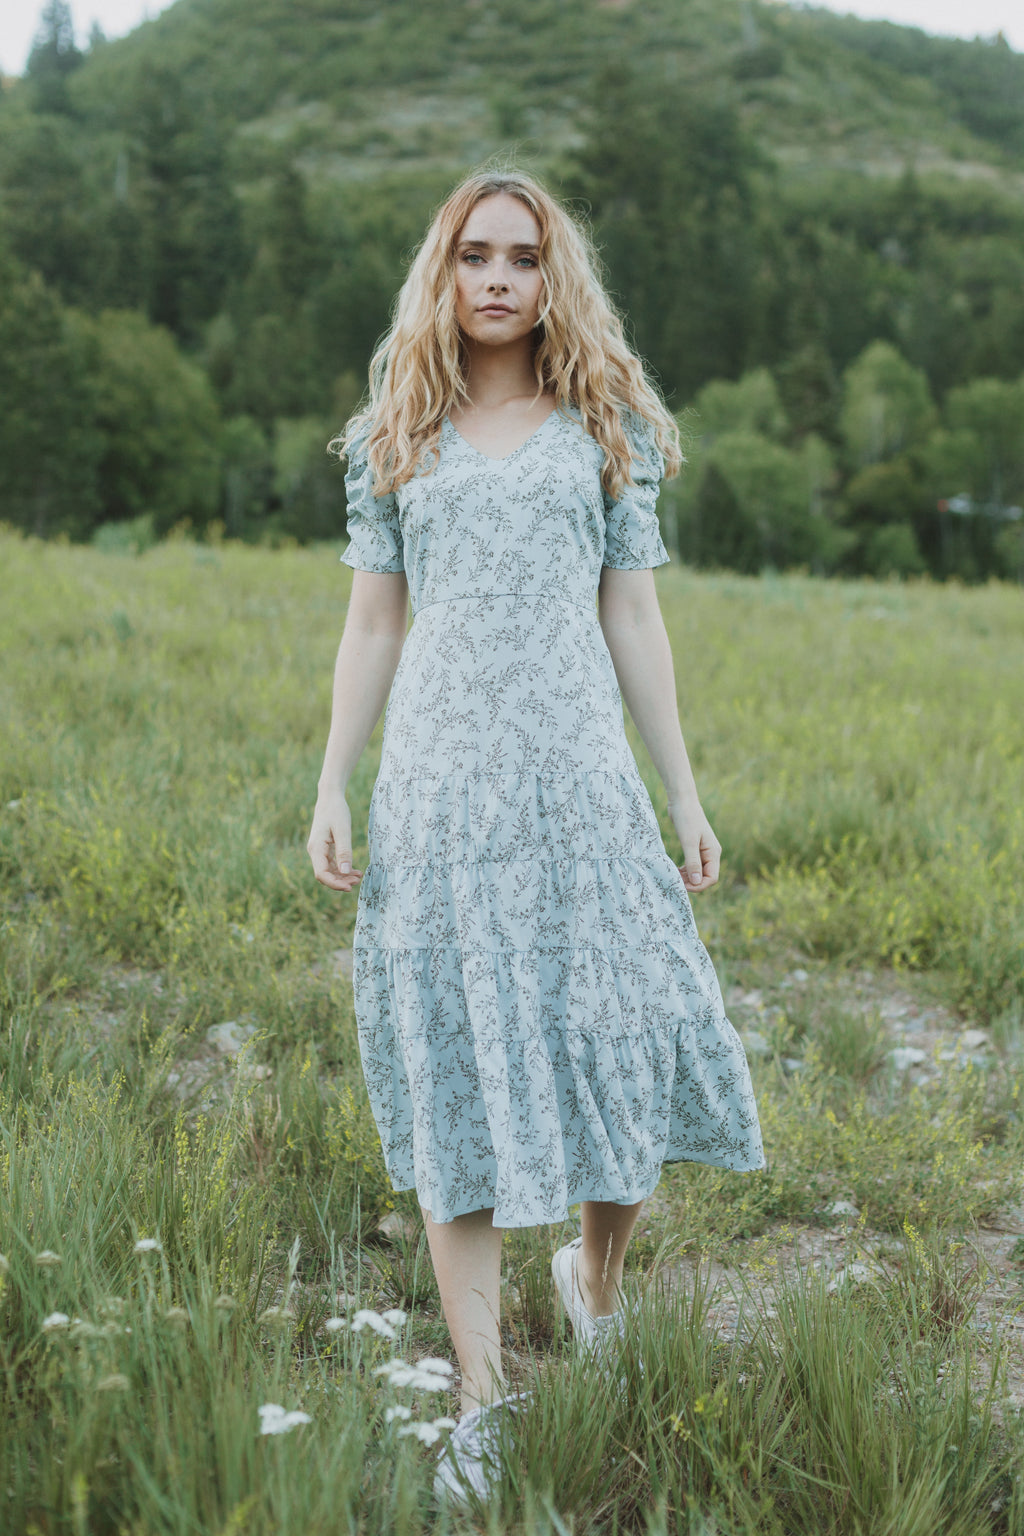 The Arian Floral Tiered Dress in Sky